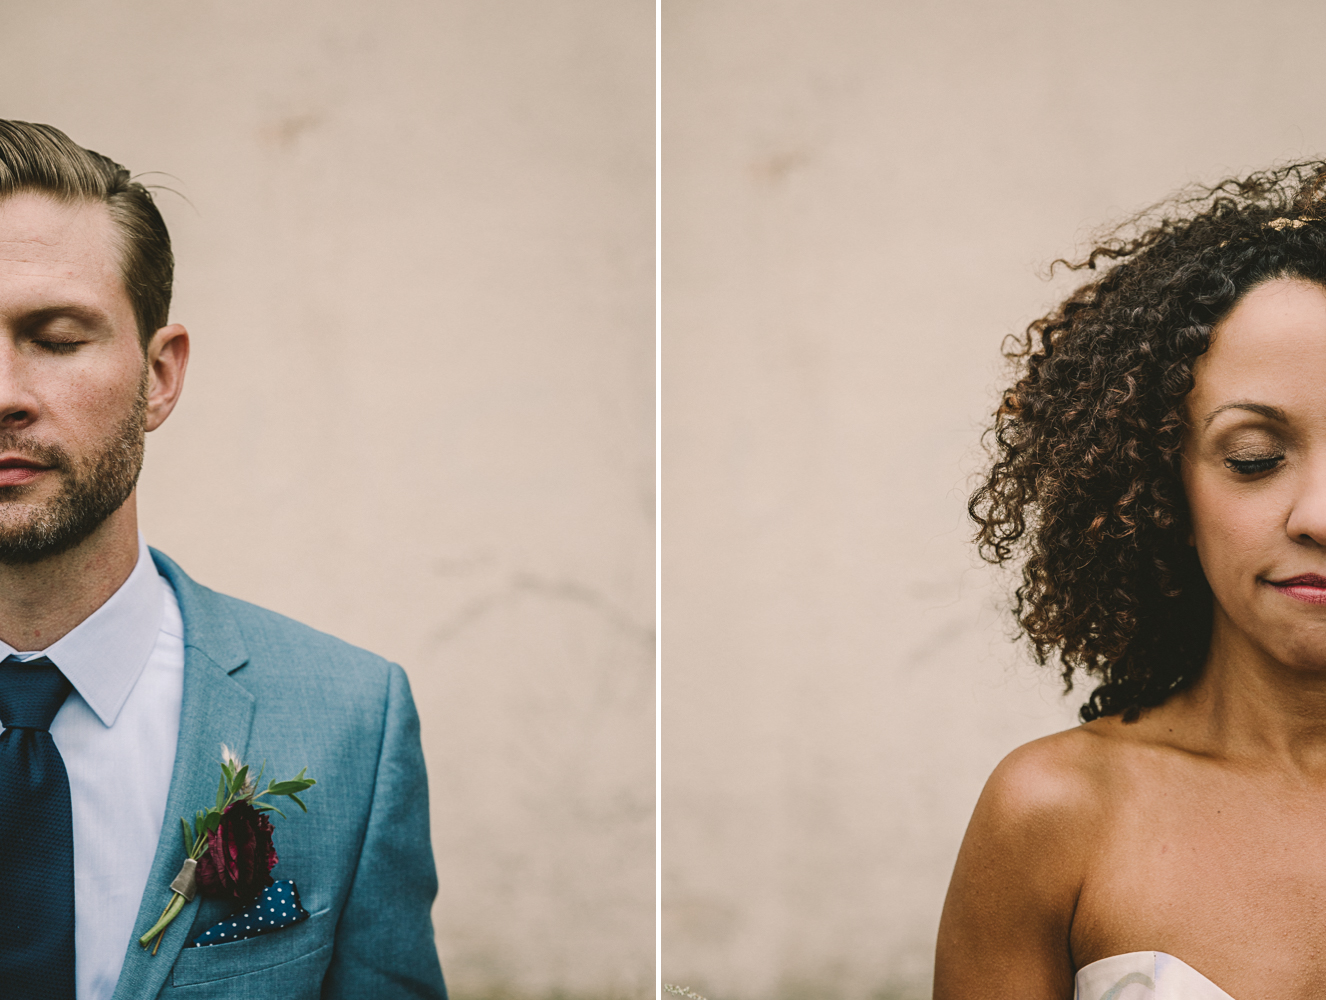 baltimore half faces bride and groom wedding photographer .jpg